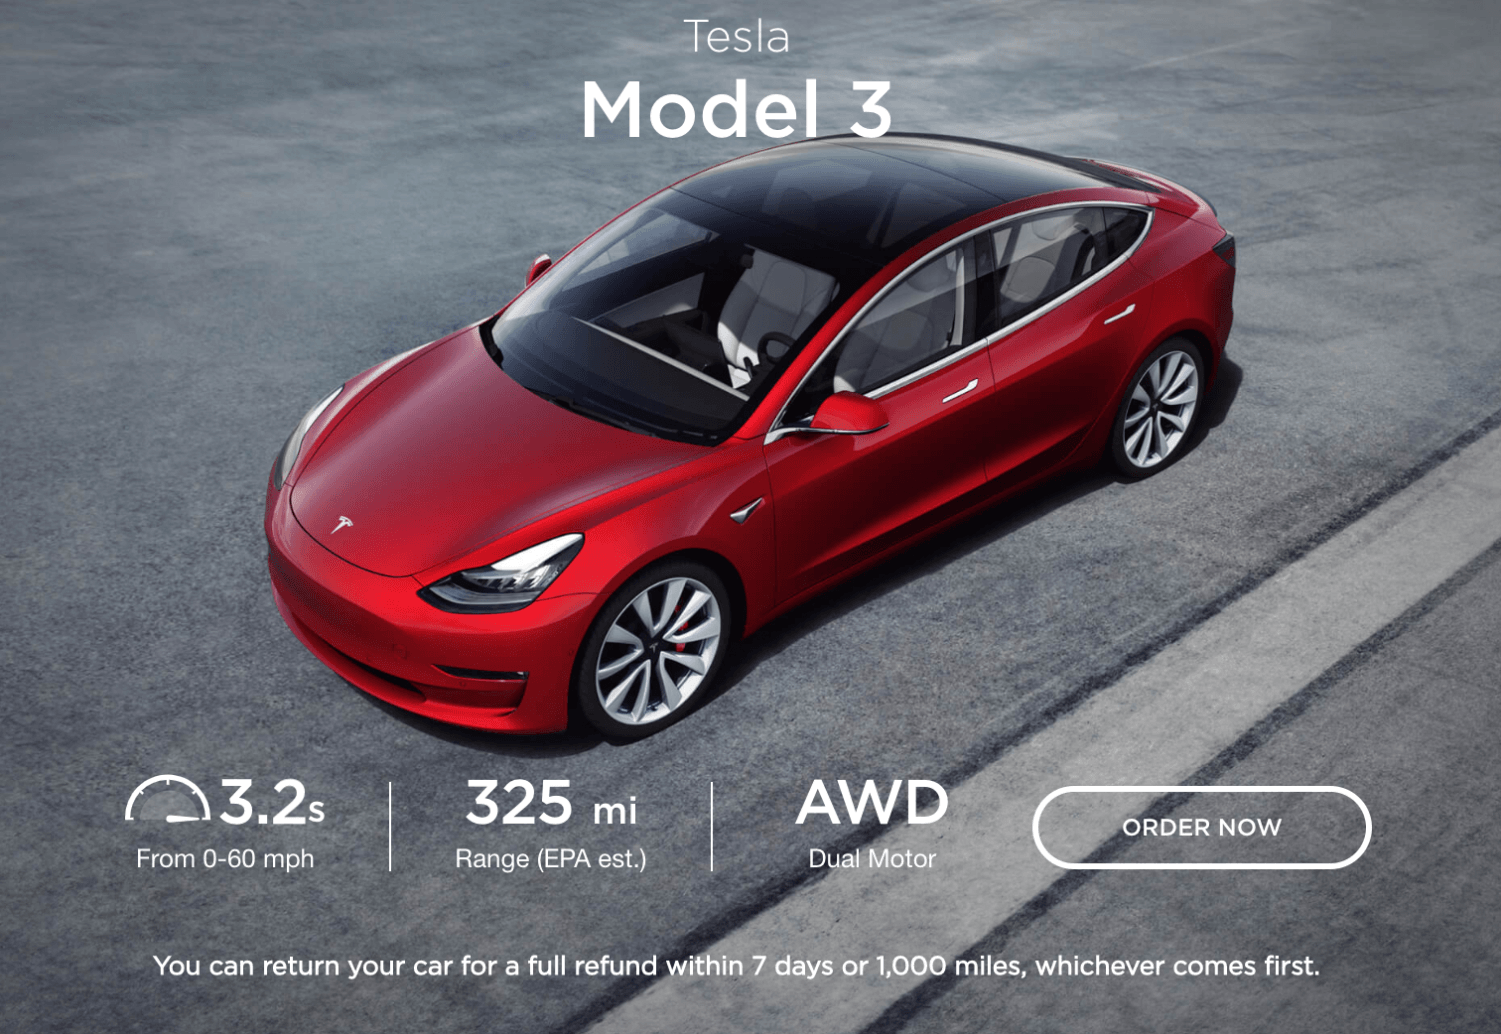 Tesla unveiled a more affordable version of its Model 3 sedan on Feb. 28 as well as an SUV, the Model Y, two weeks later. The carmaker is trying to partially branch out from its luxury image. (Screenshot | tesla.com)